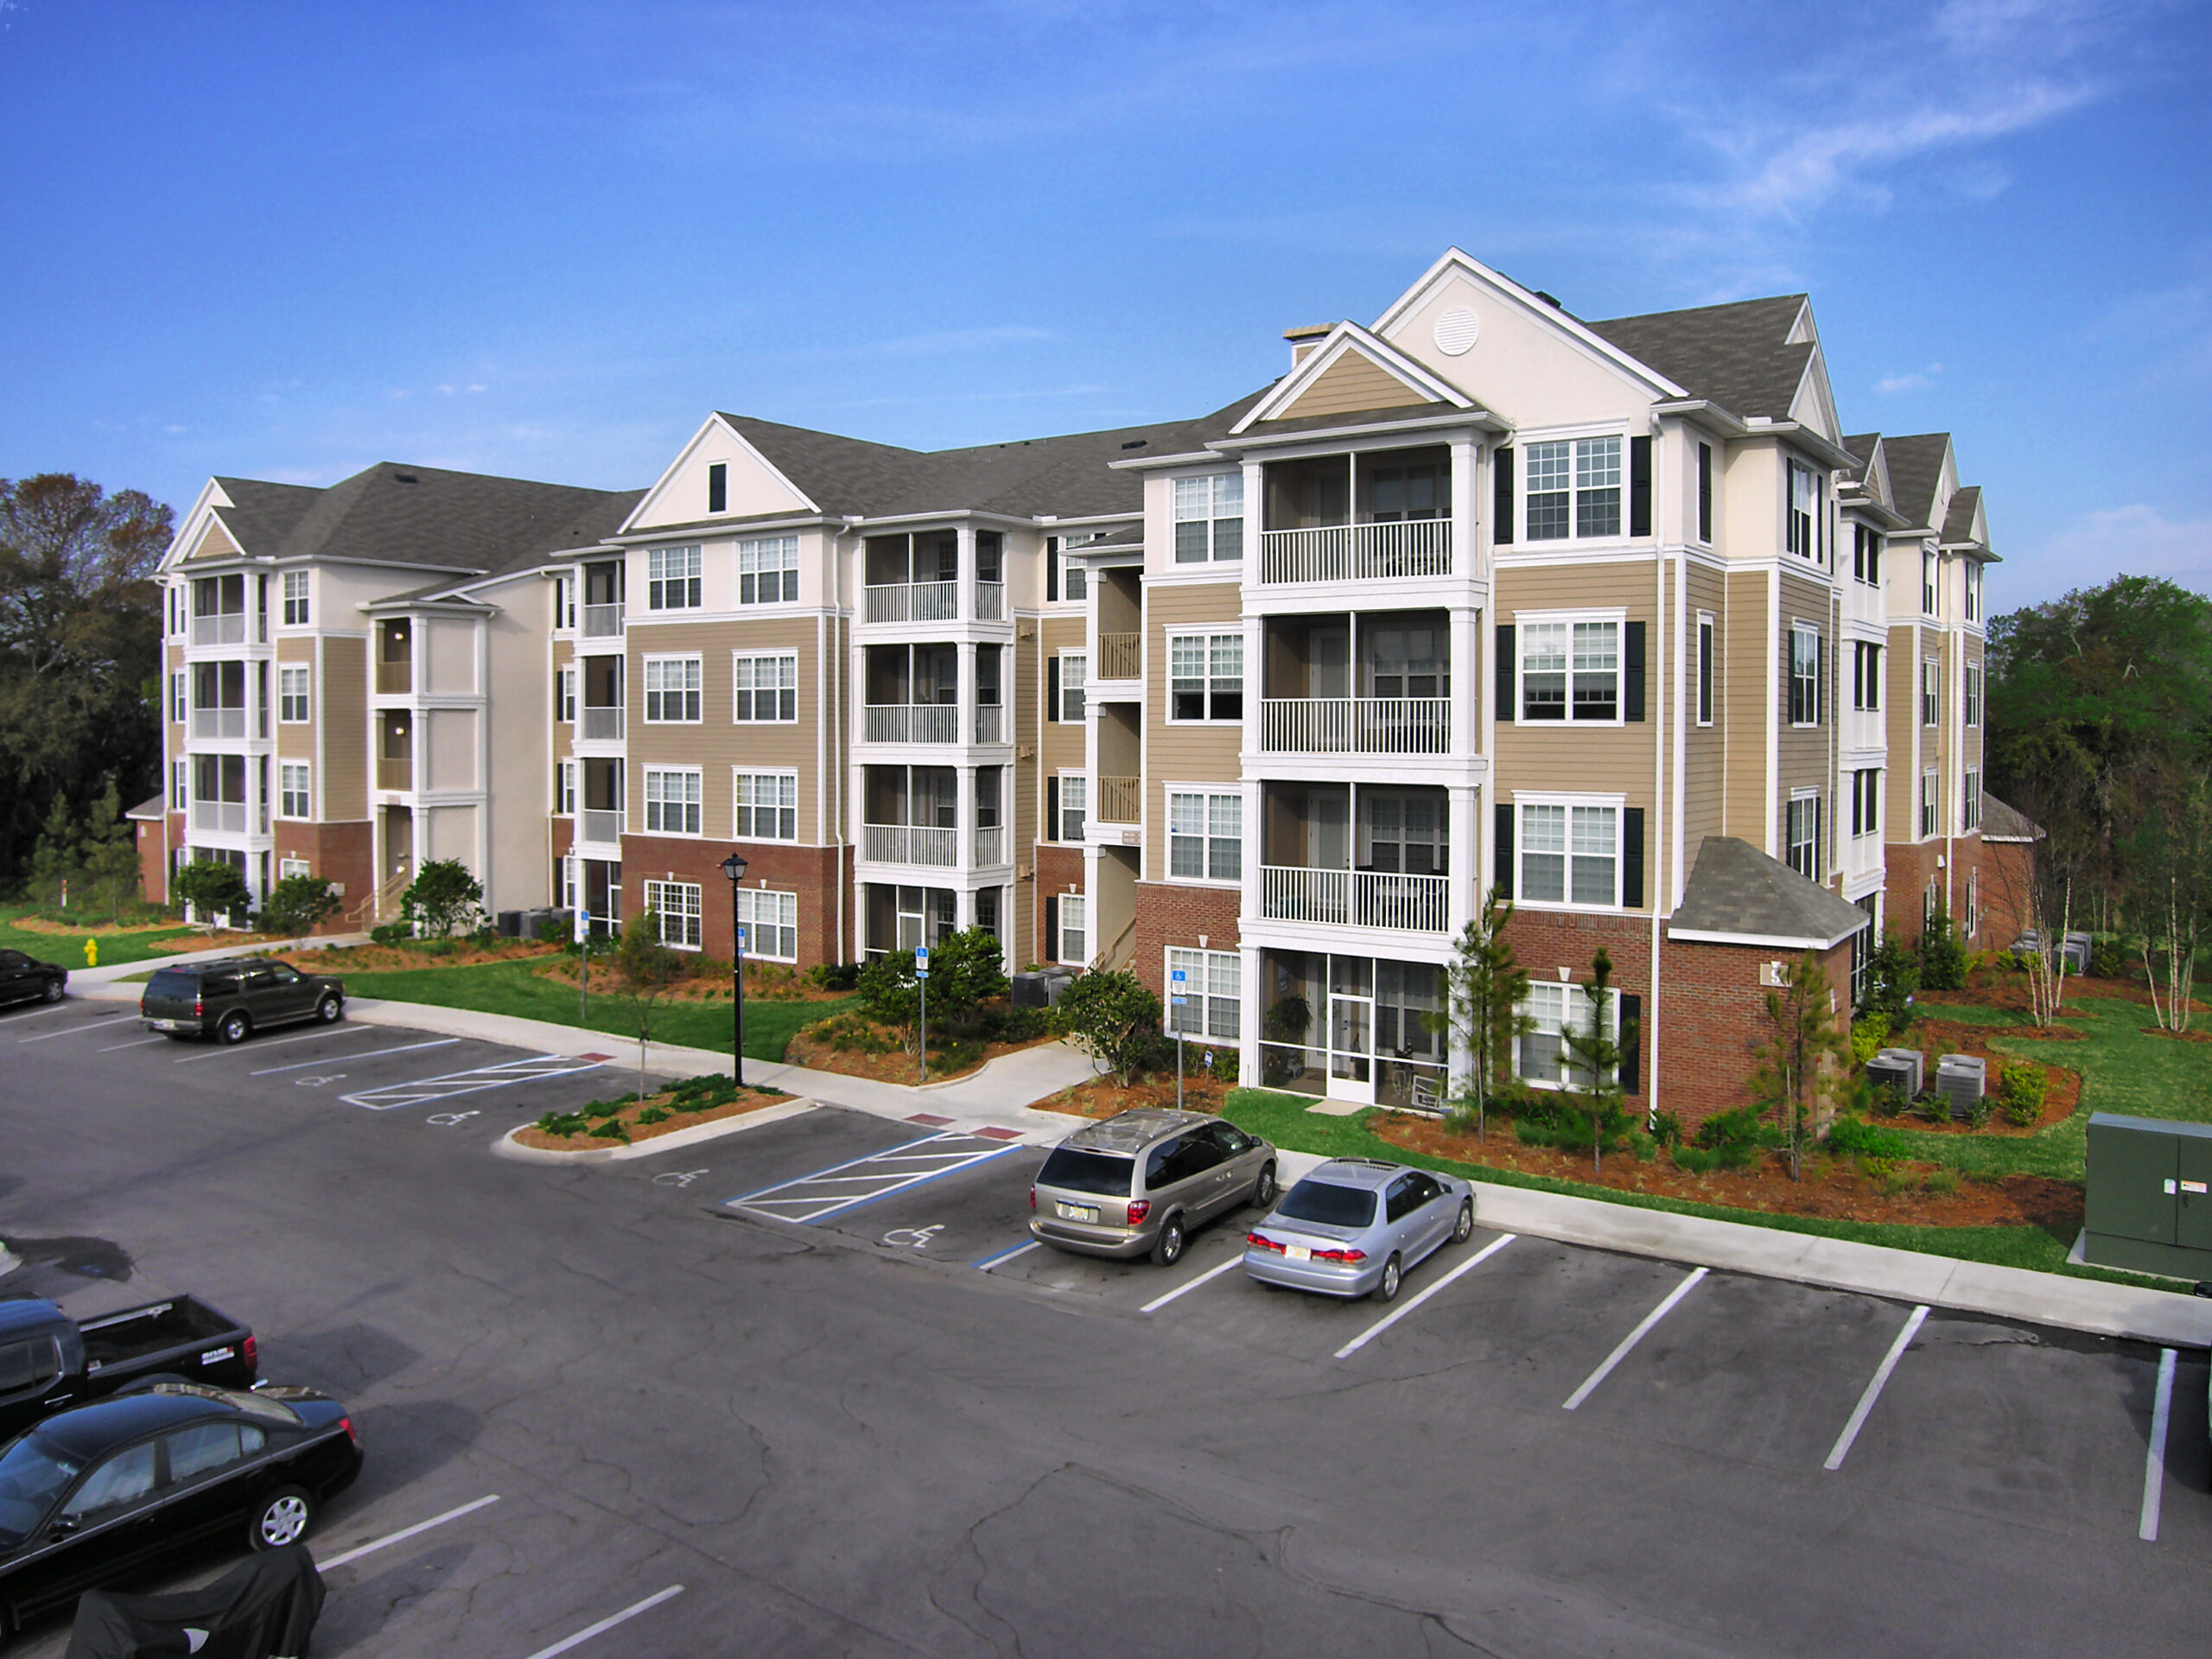 Condos for sale, Why Prefer Condos For Sale Over Apartments In The Area?